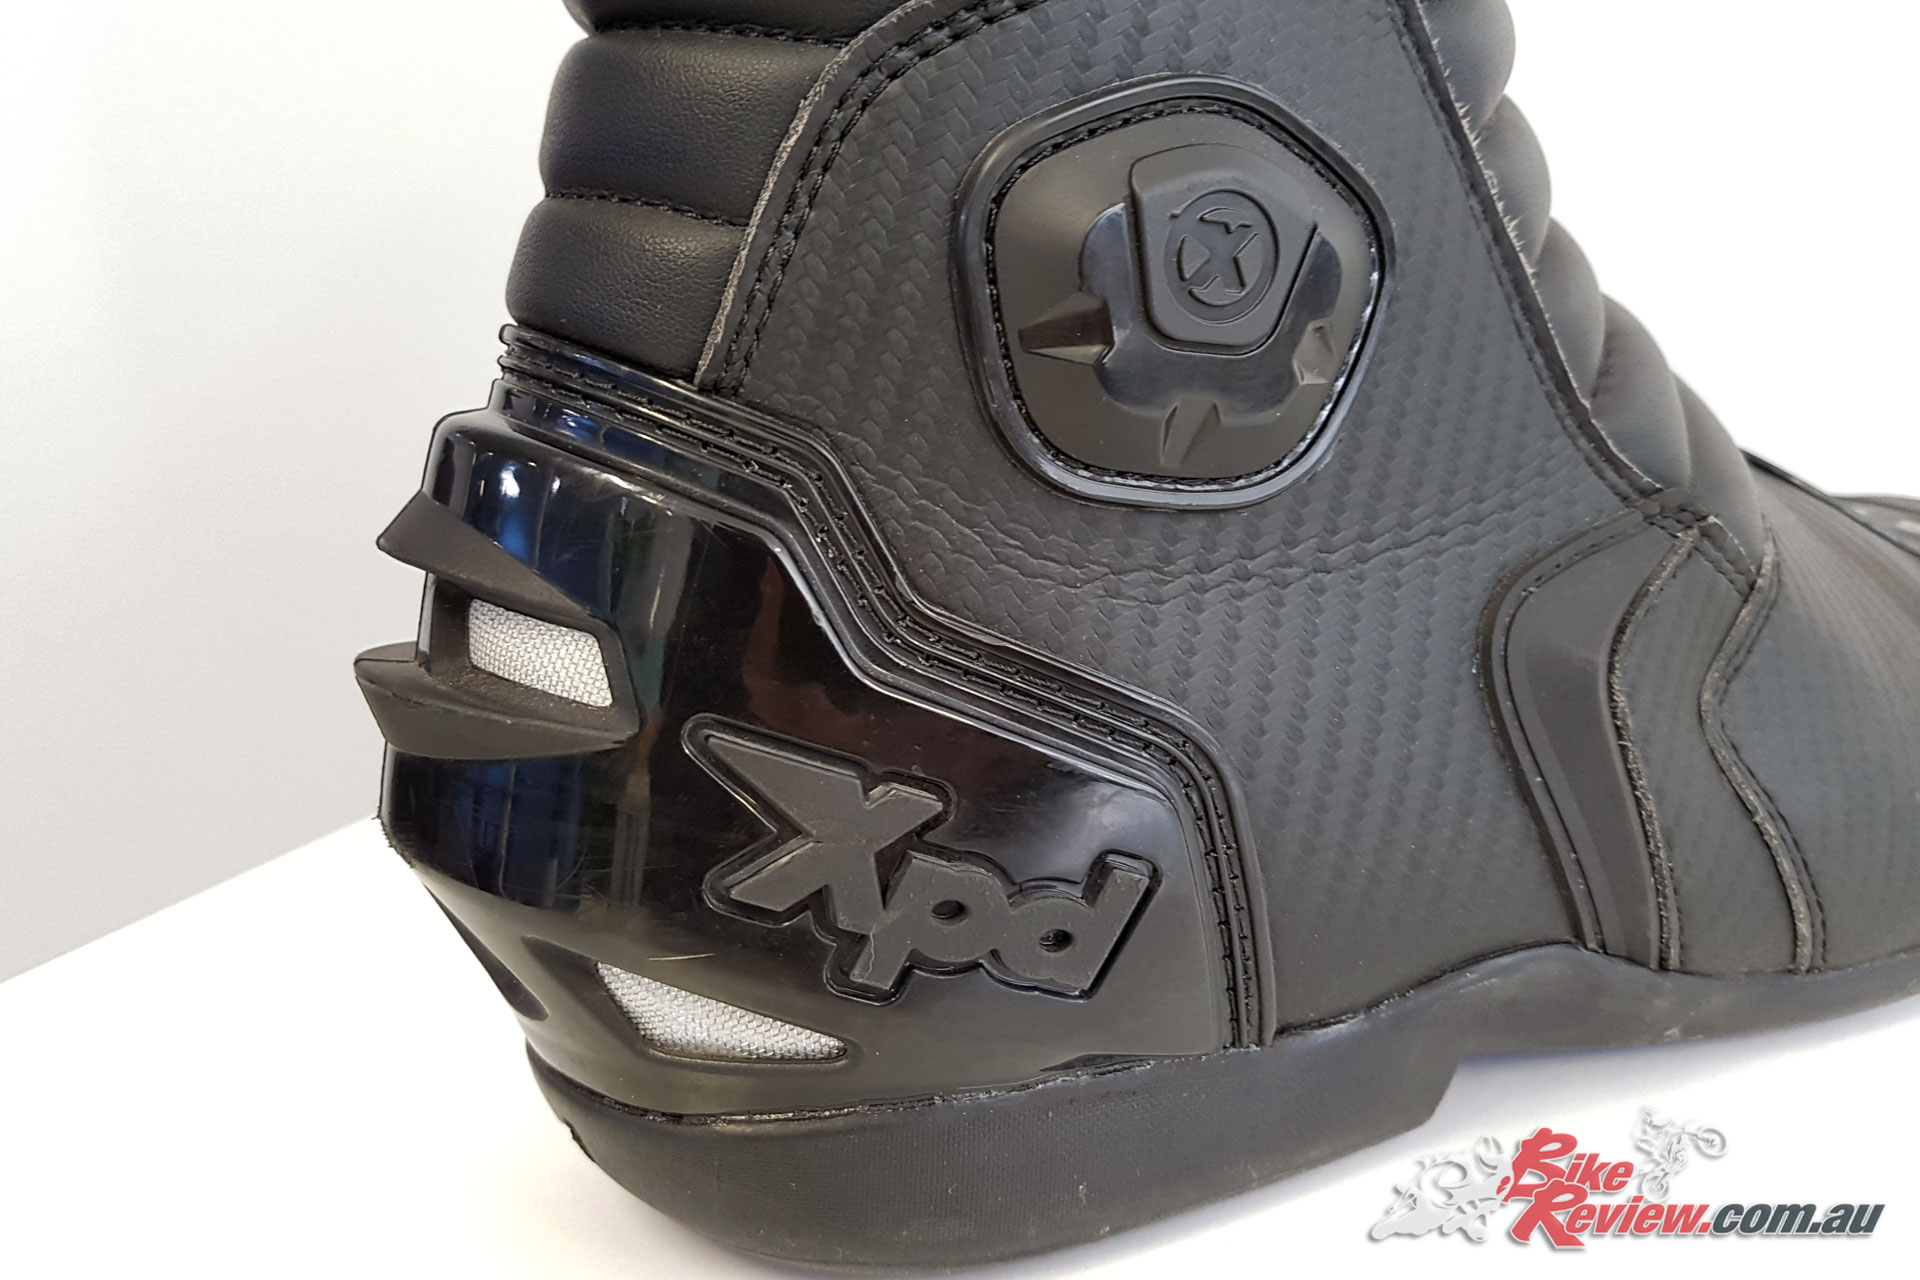 Carbon-style outer replaces the leather on my previous XP3-S boots, with all the same safety and airflow features